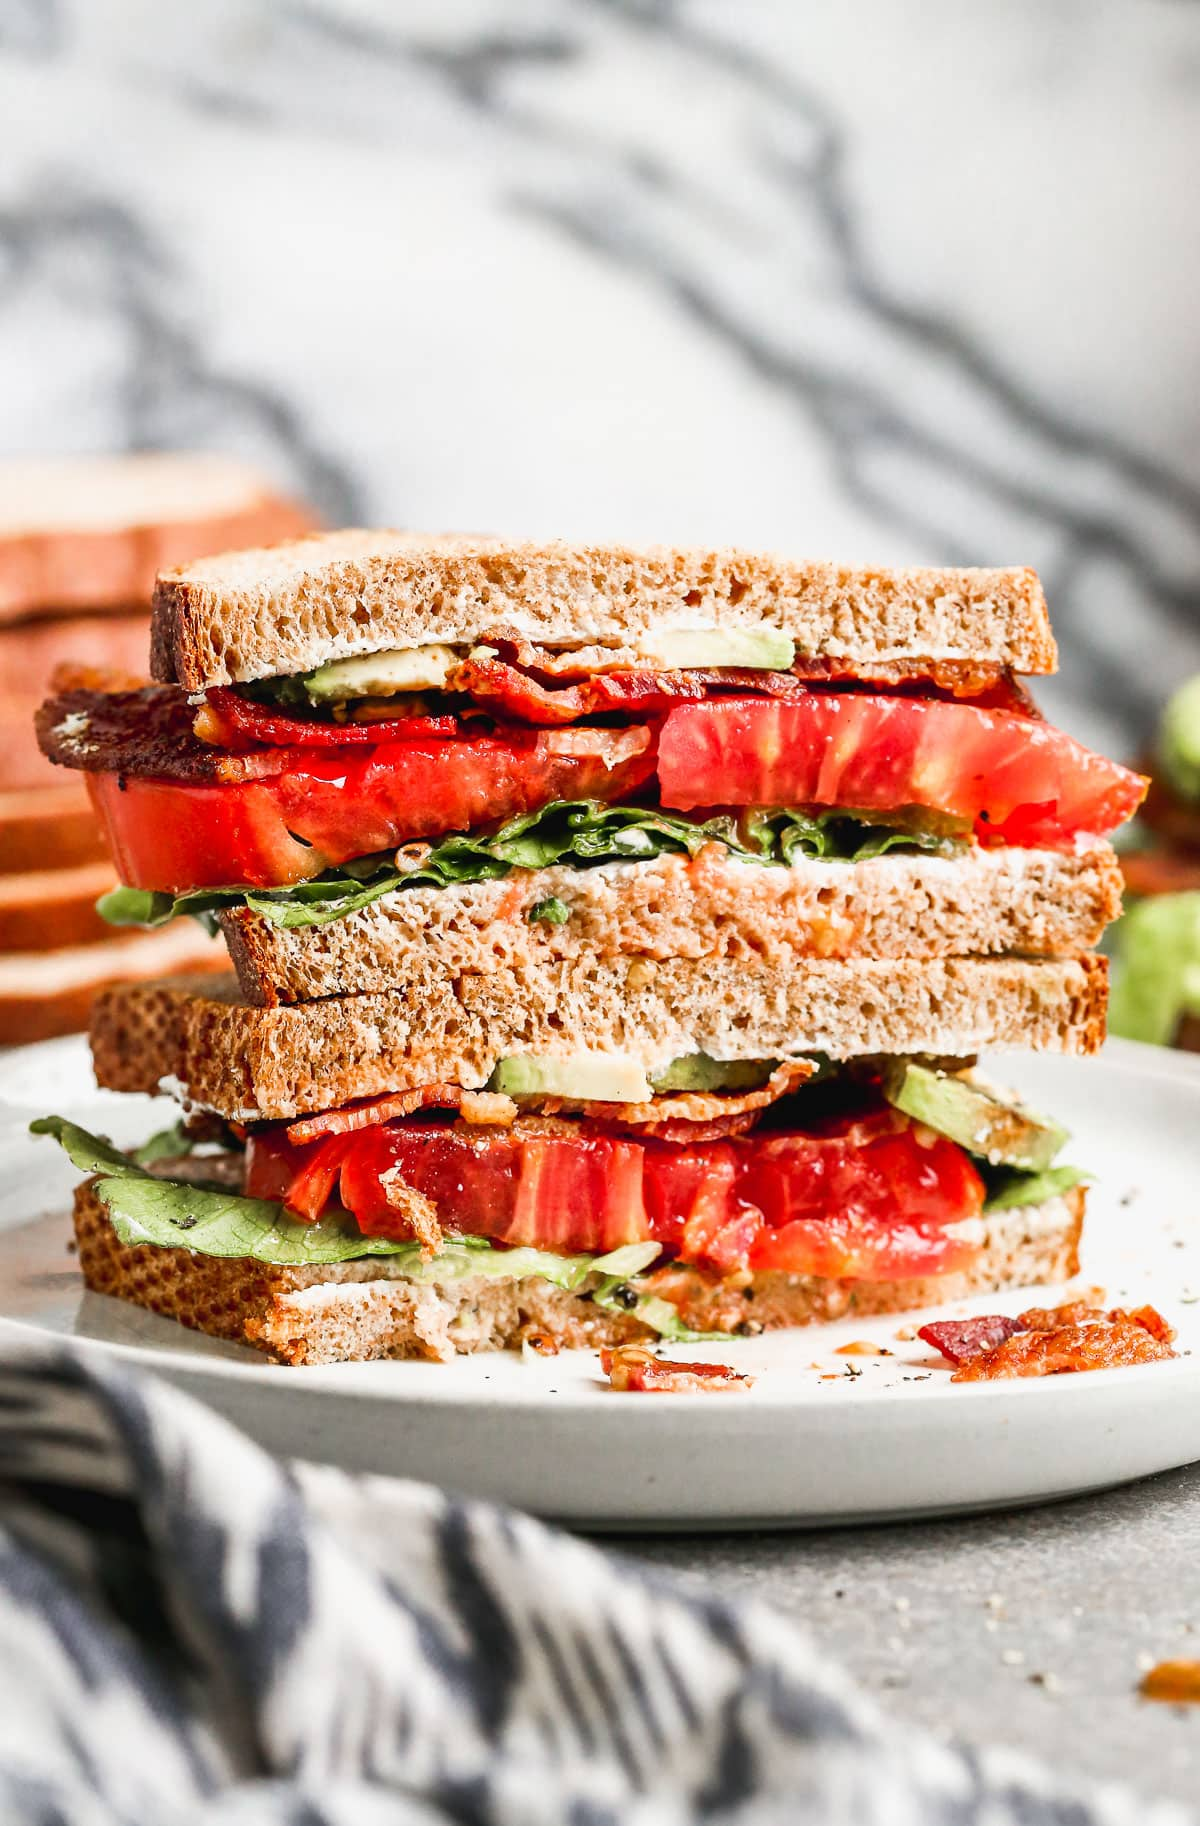 the ultimate blt sandwich with fresh tomato